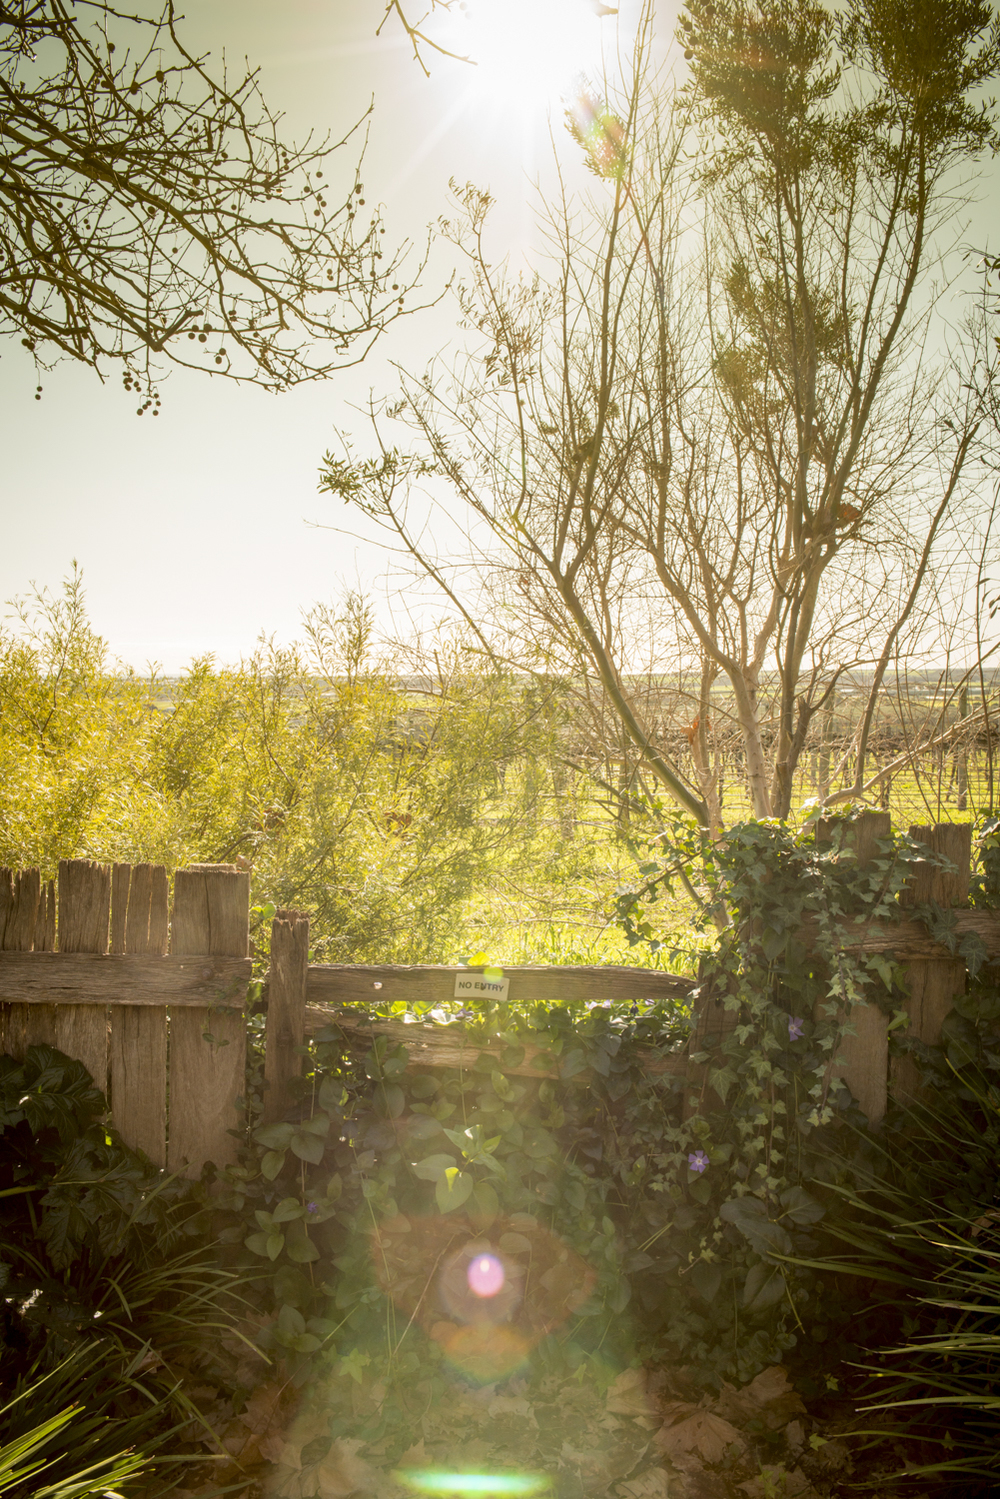 Sun flare and shooting into the sun. Sometimes it works. The sun flares in this image makes it softer and dreamier. It was taken at a cottage in the middle of vineyards - romantic, relaxing and surrounded by nature.